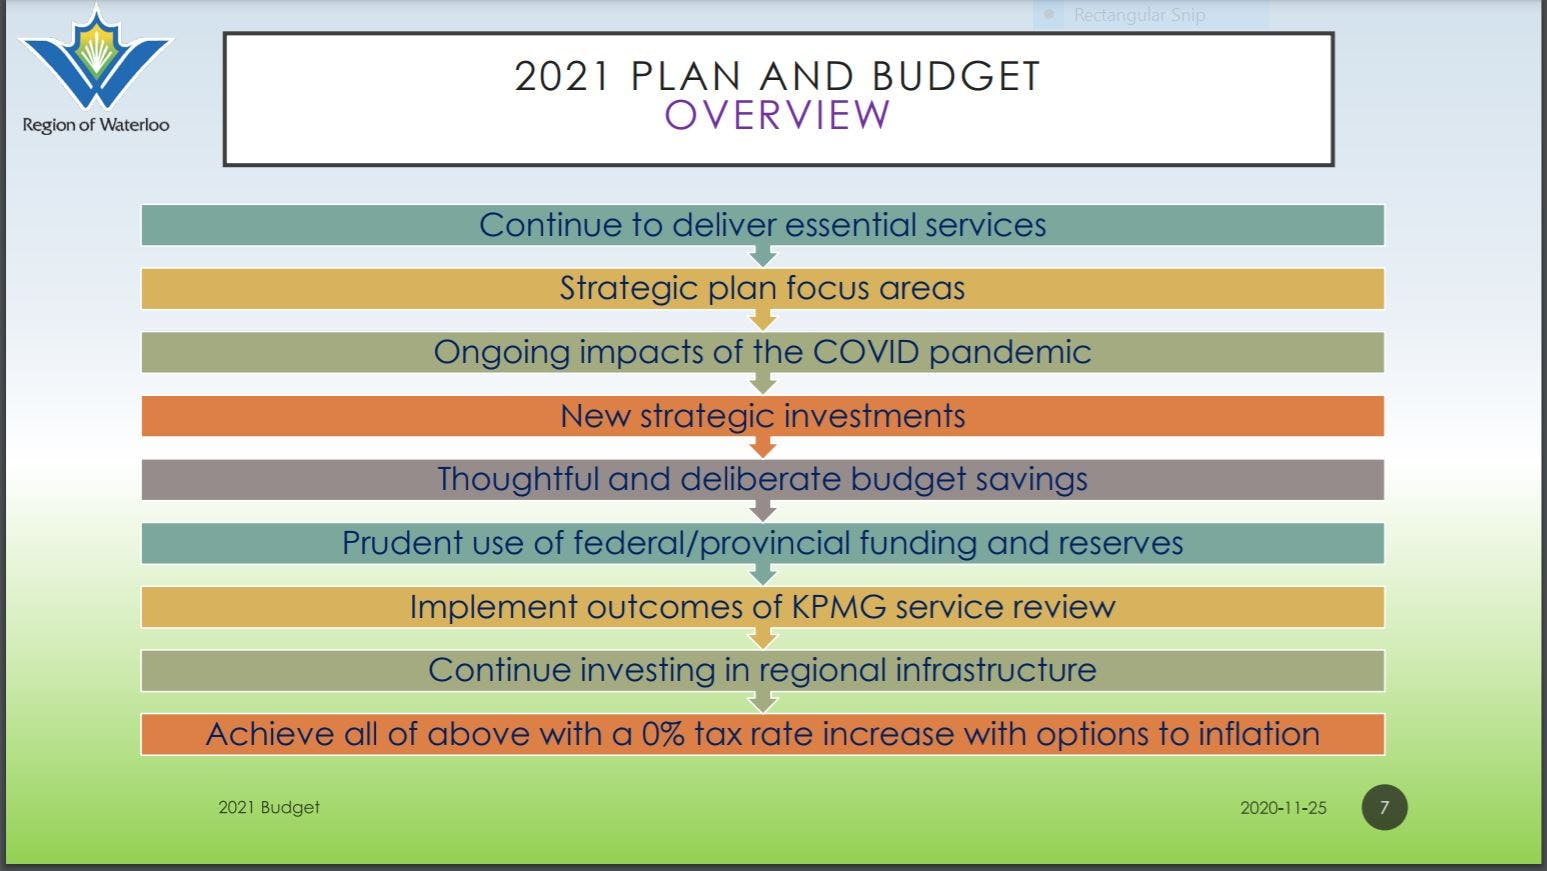 2021 Plan and Budget overview